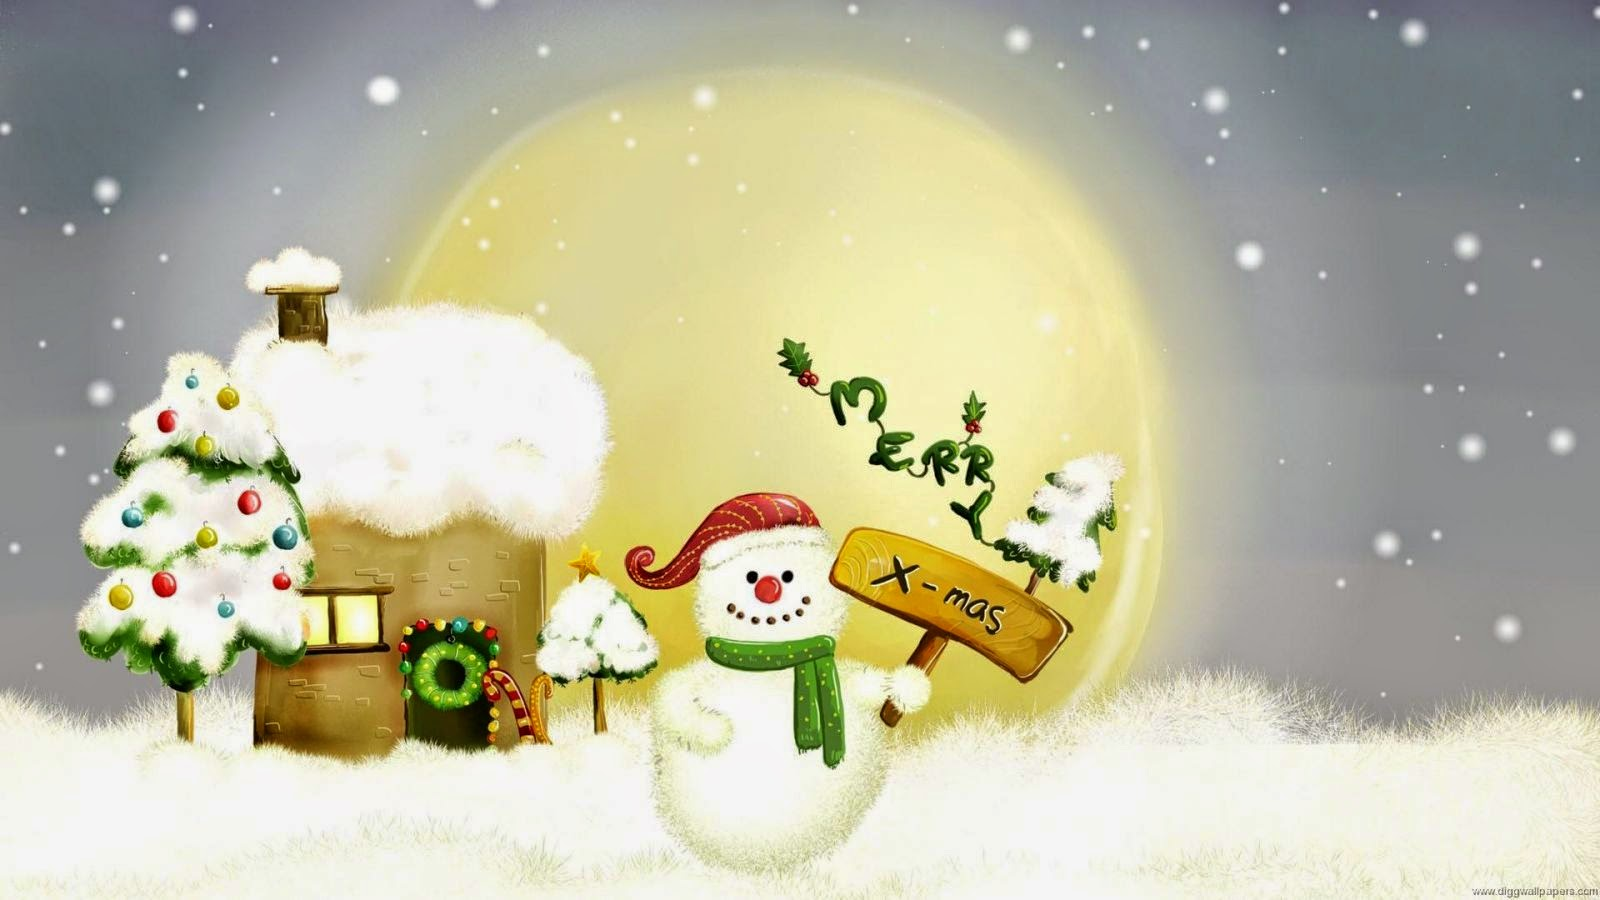 Merry-xmas-snowman-Christmas-cartoon-drawing-image-for-kids-photo.jpg